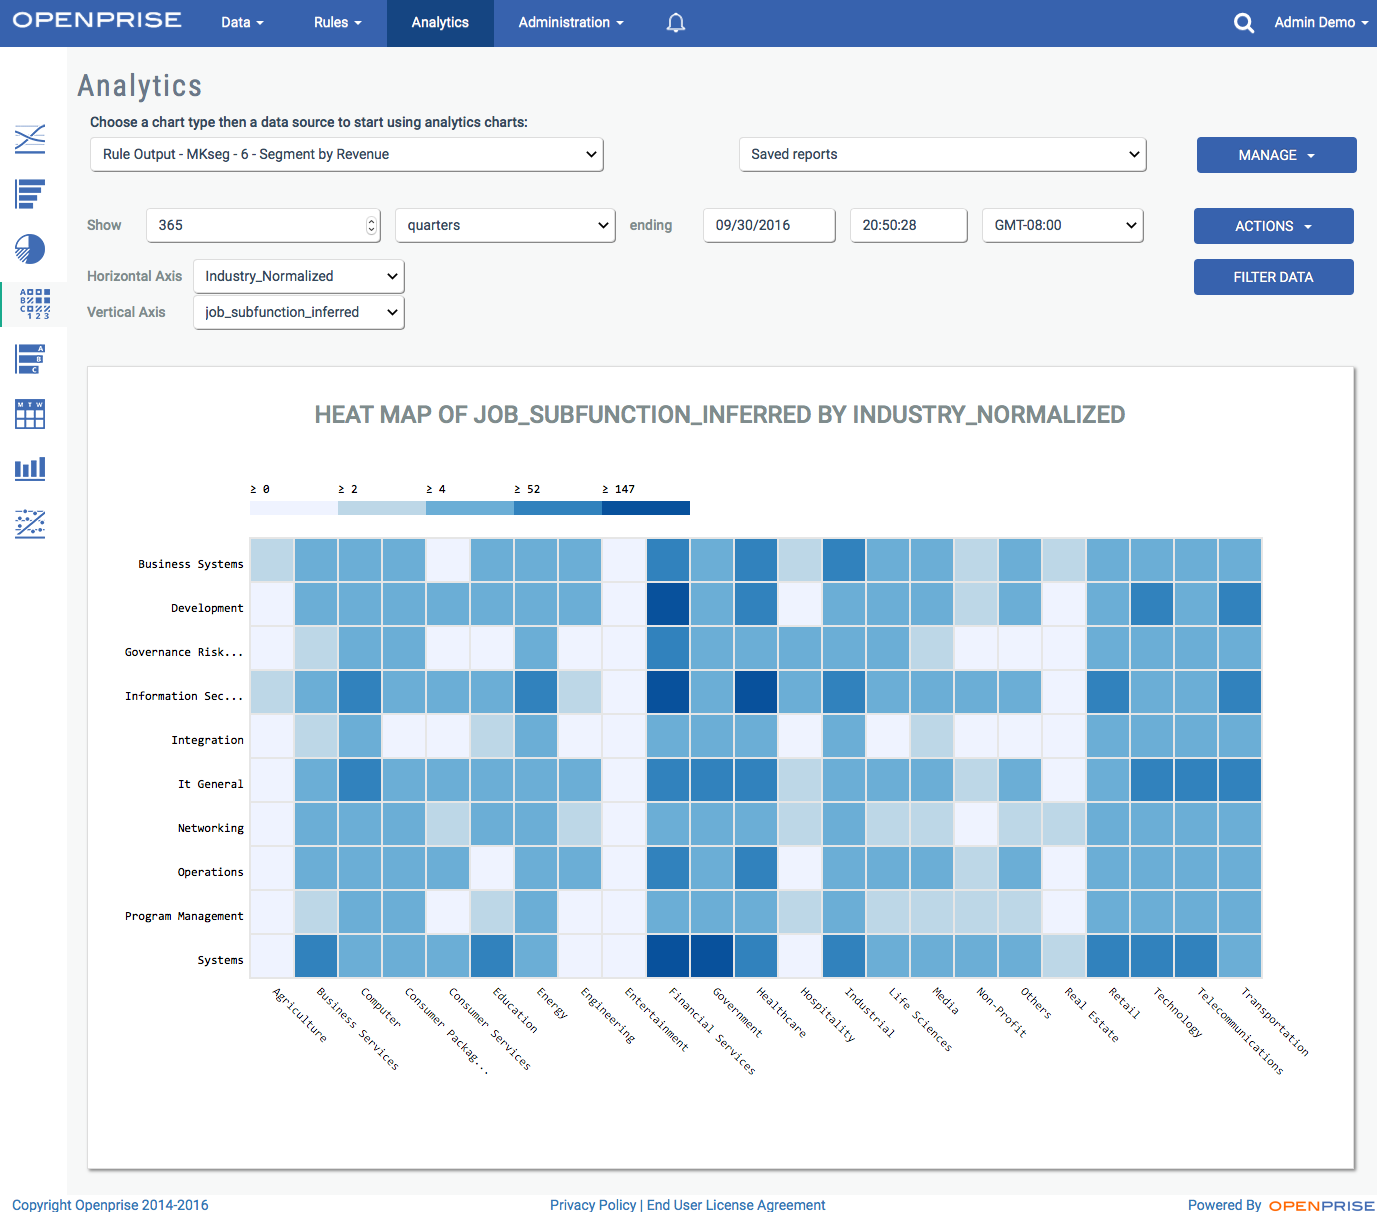 Openprise Data Automation includes data heatmaps that can show account coverage by job function and many other attributes.